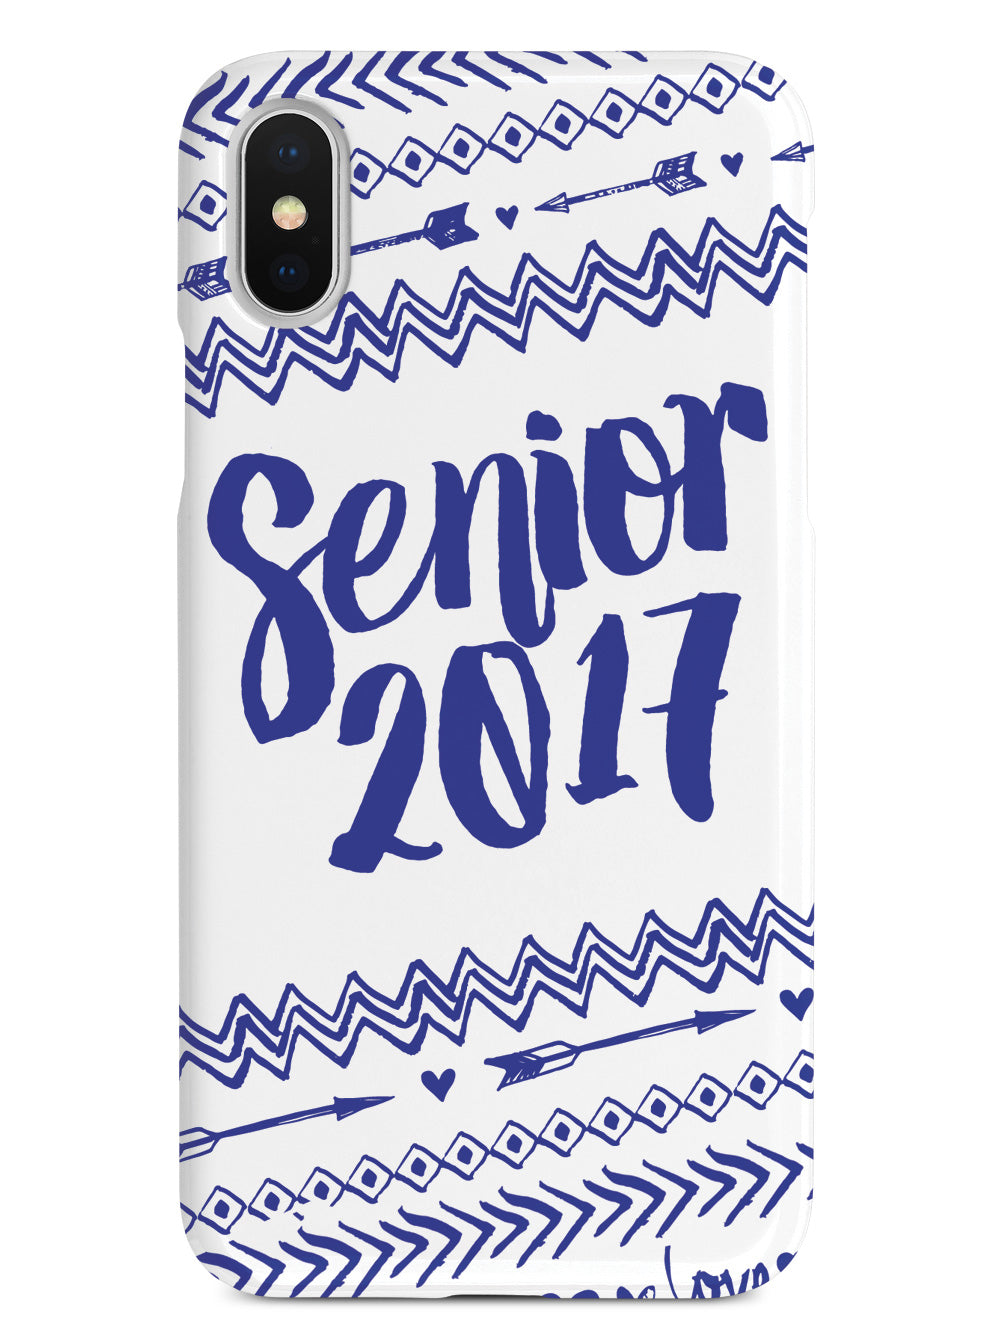 Senior 2017 - Blue Case